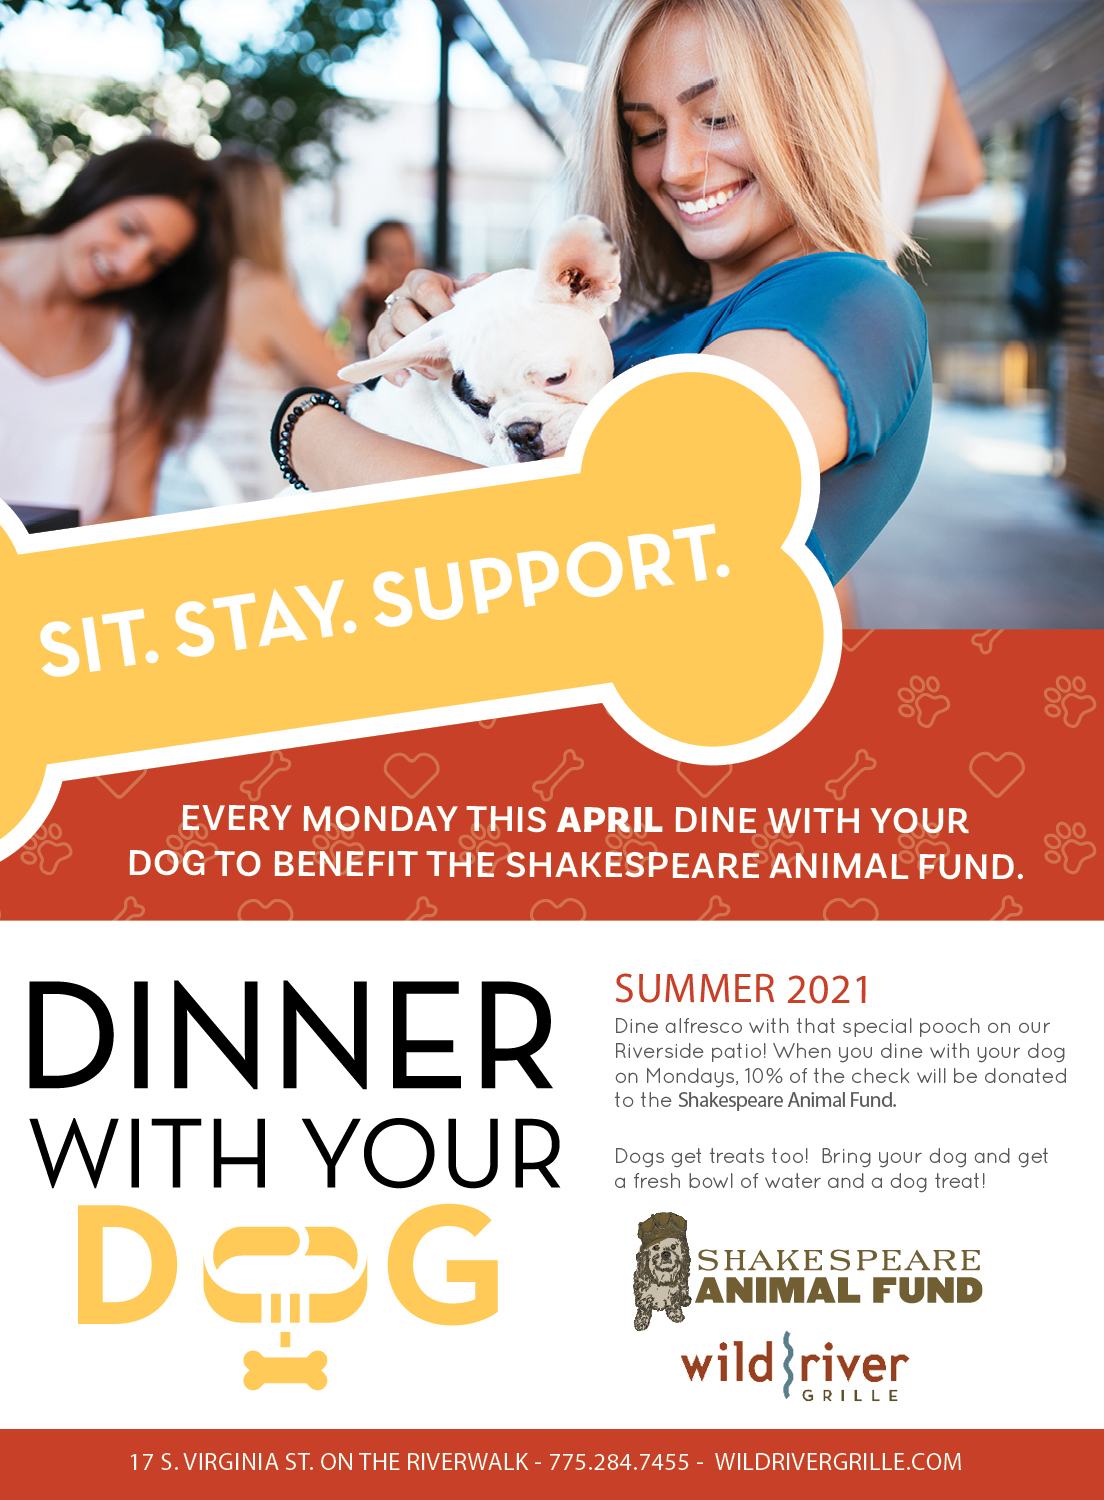 Dinner With Your Dog